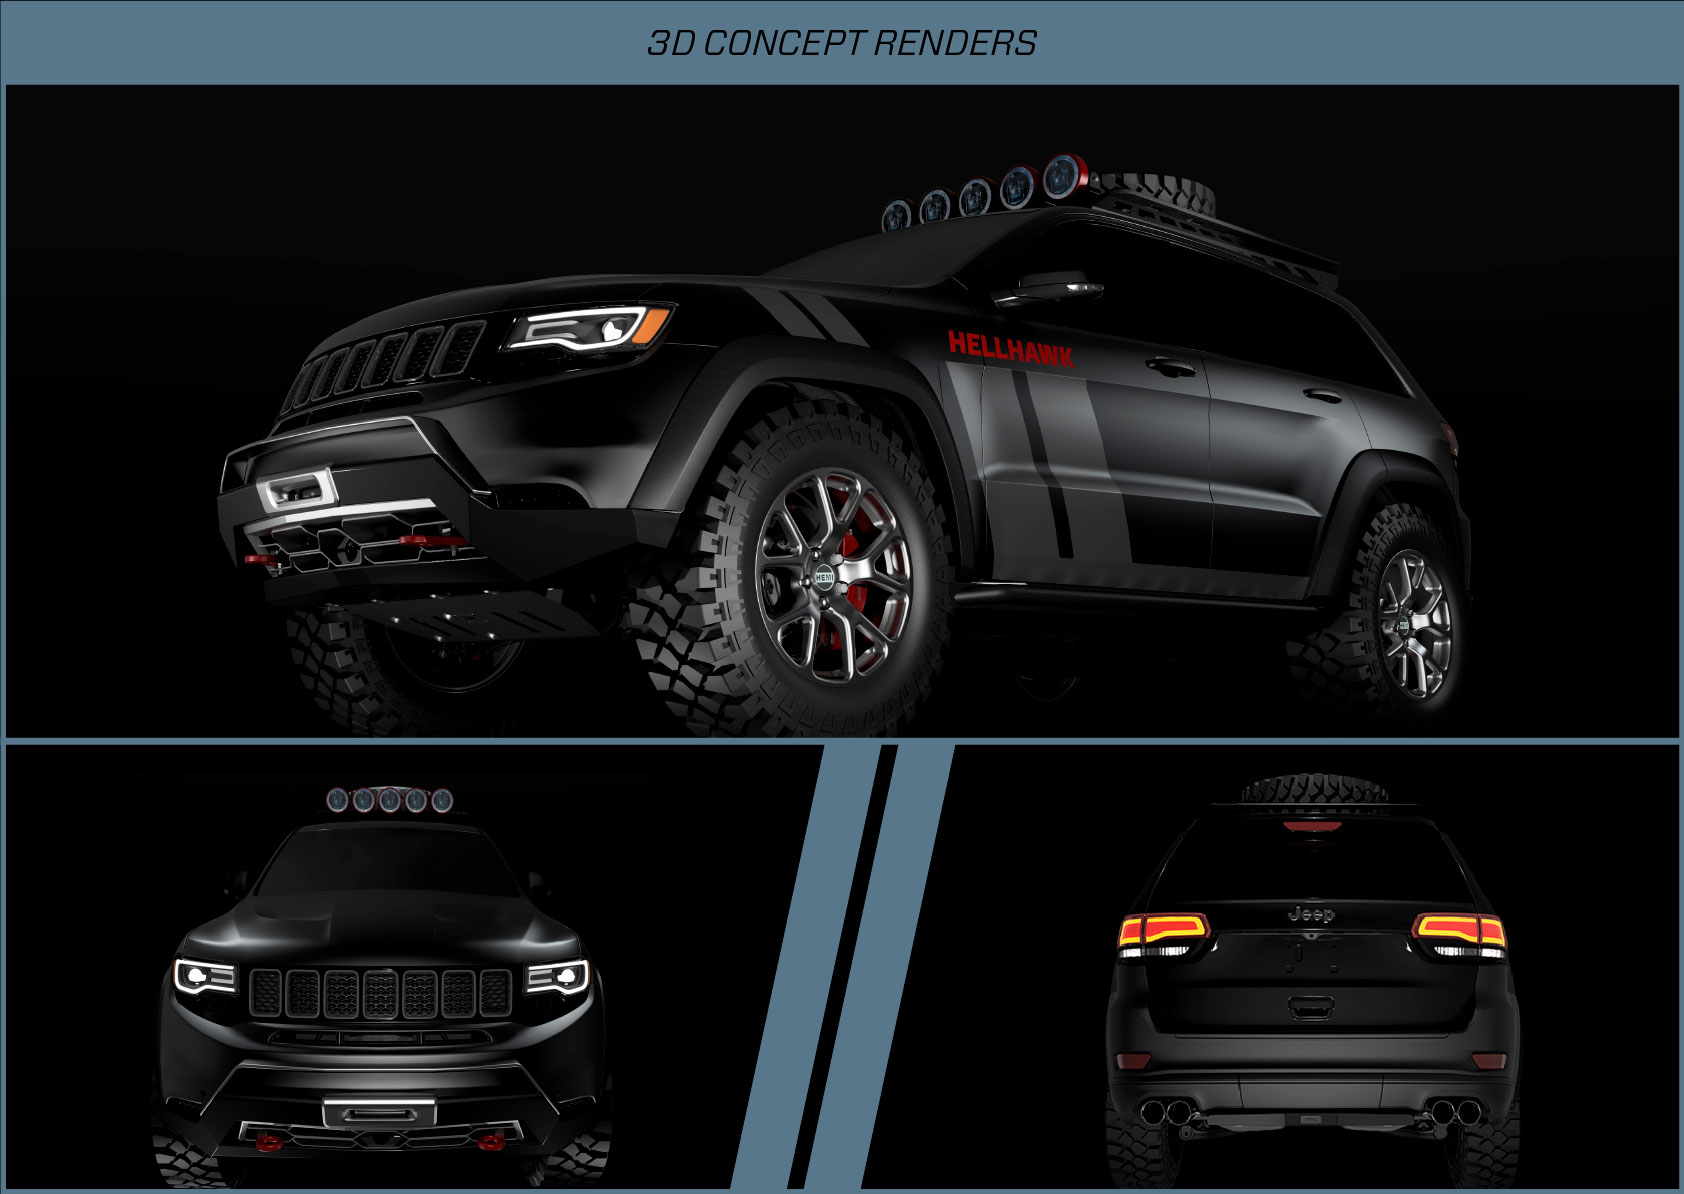 ABOUT-3D-Concept-Renders-2.jpg